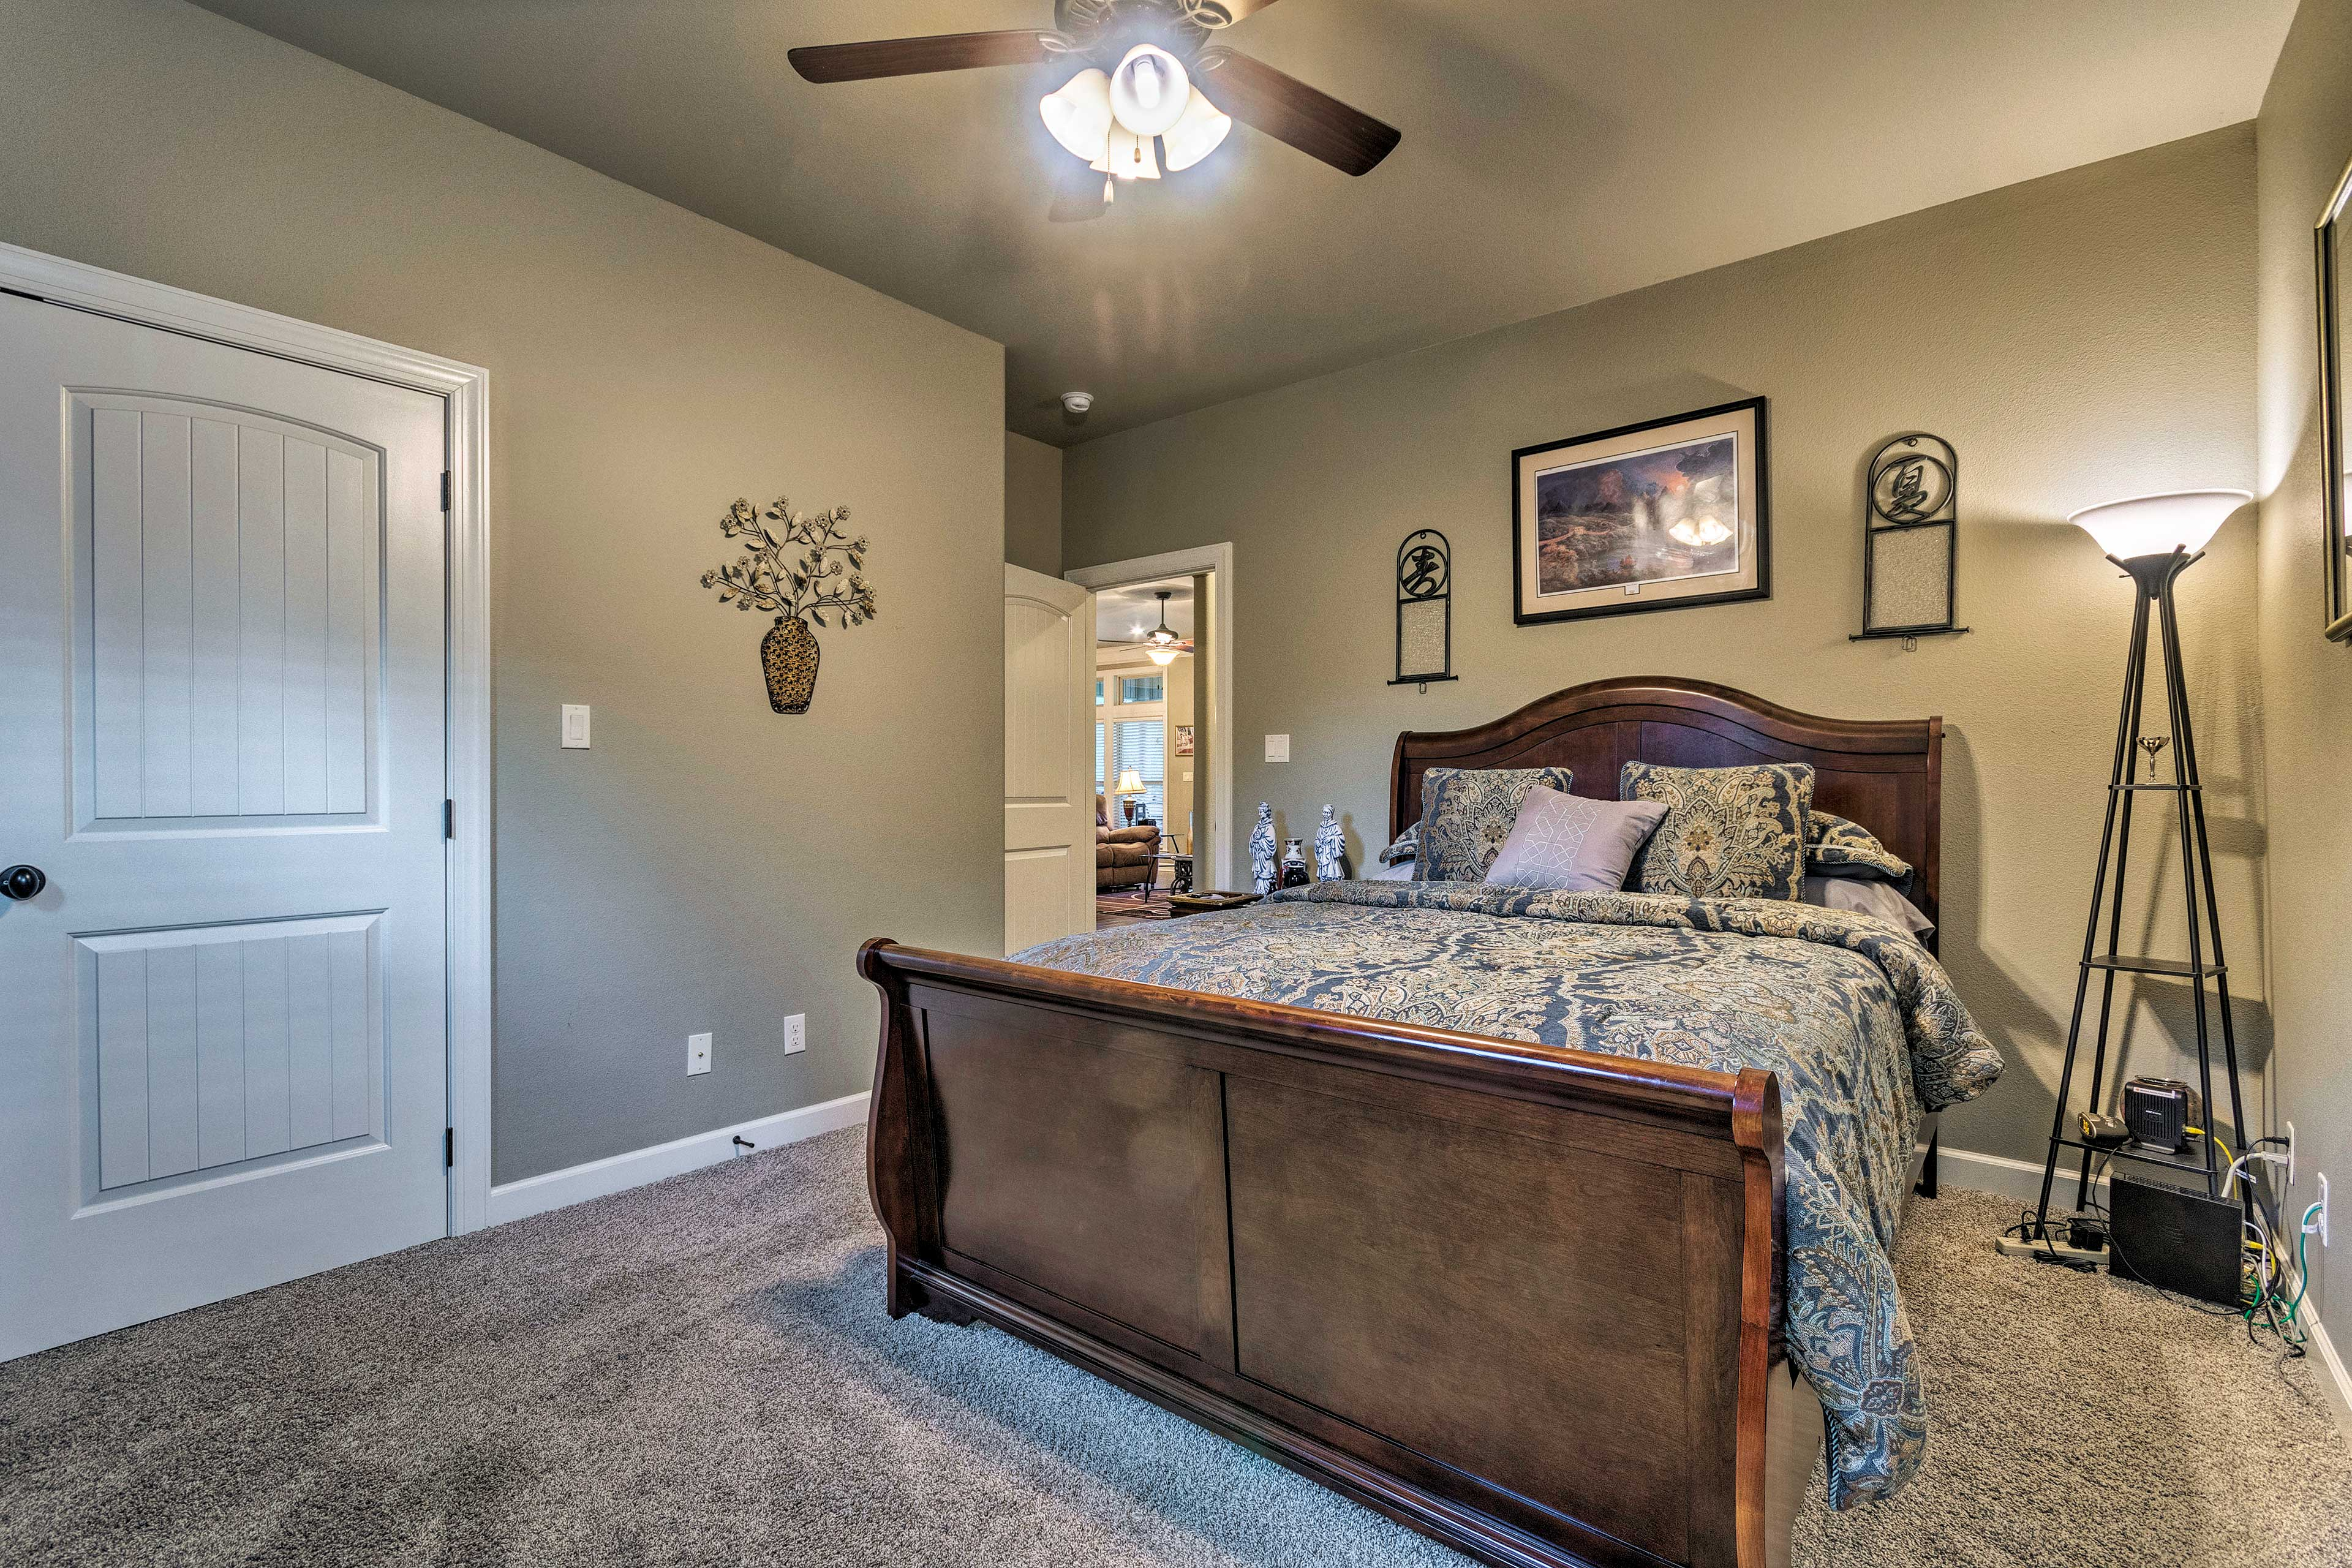 Two guests can comfortably sleep in this queen bed.